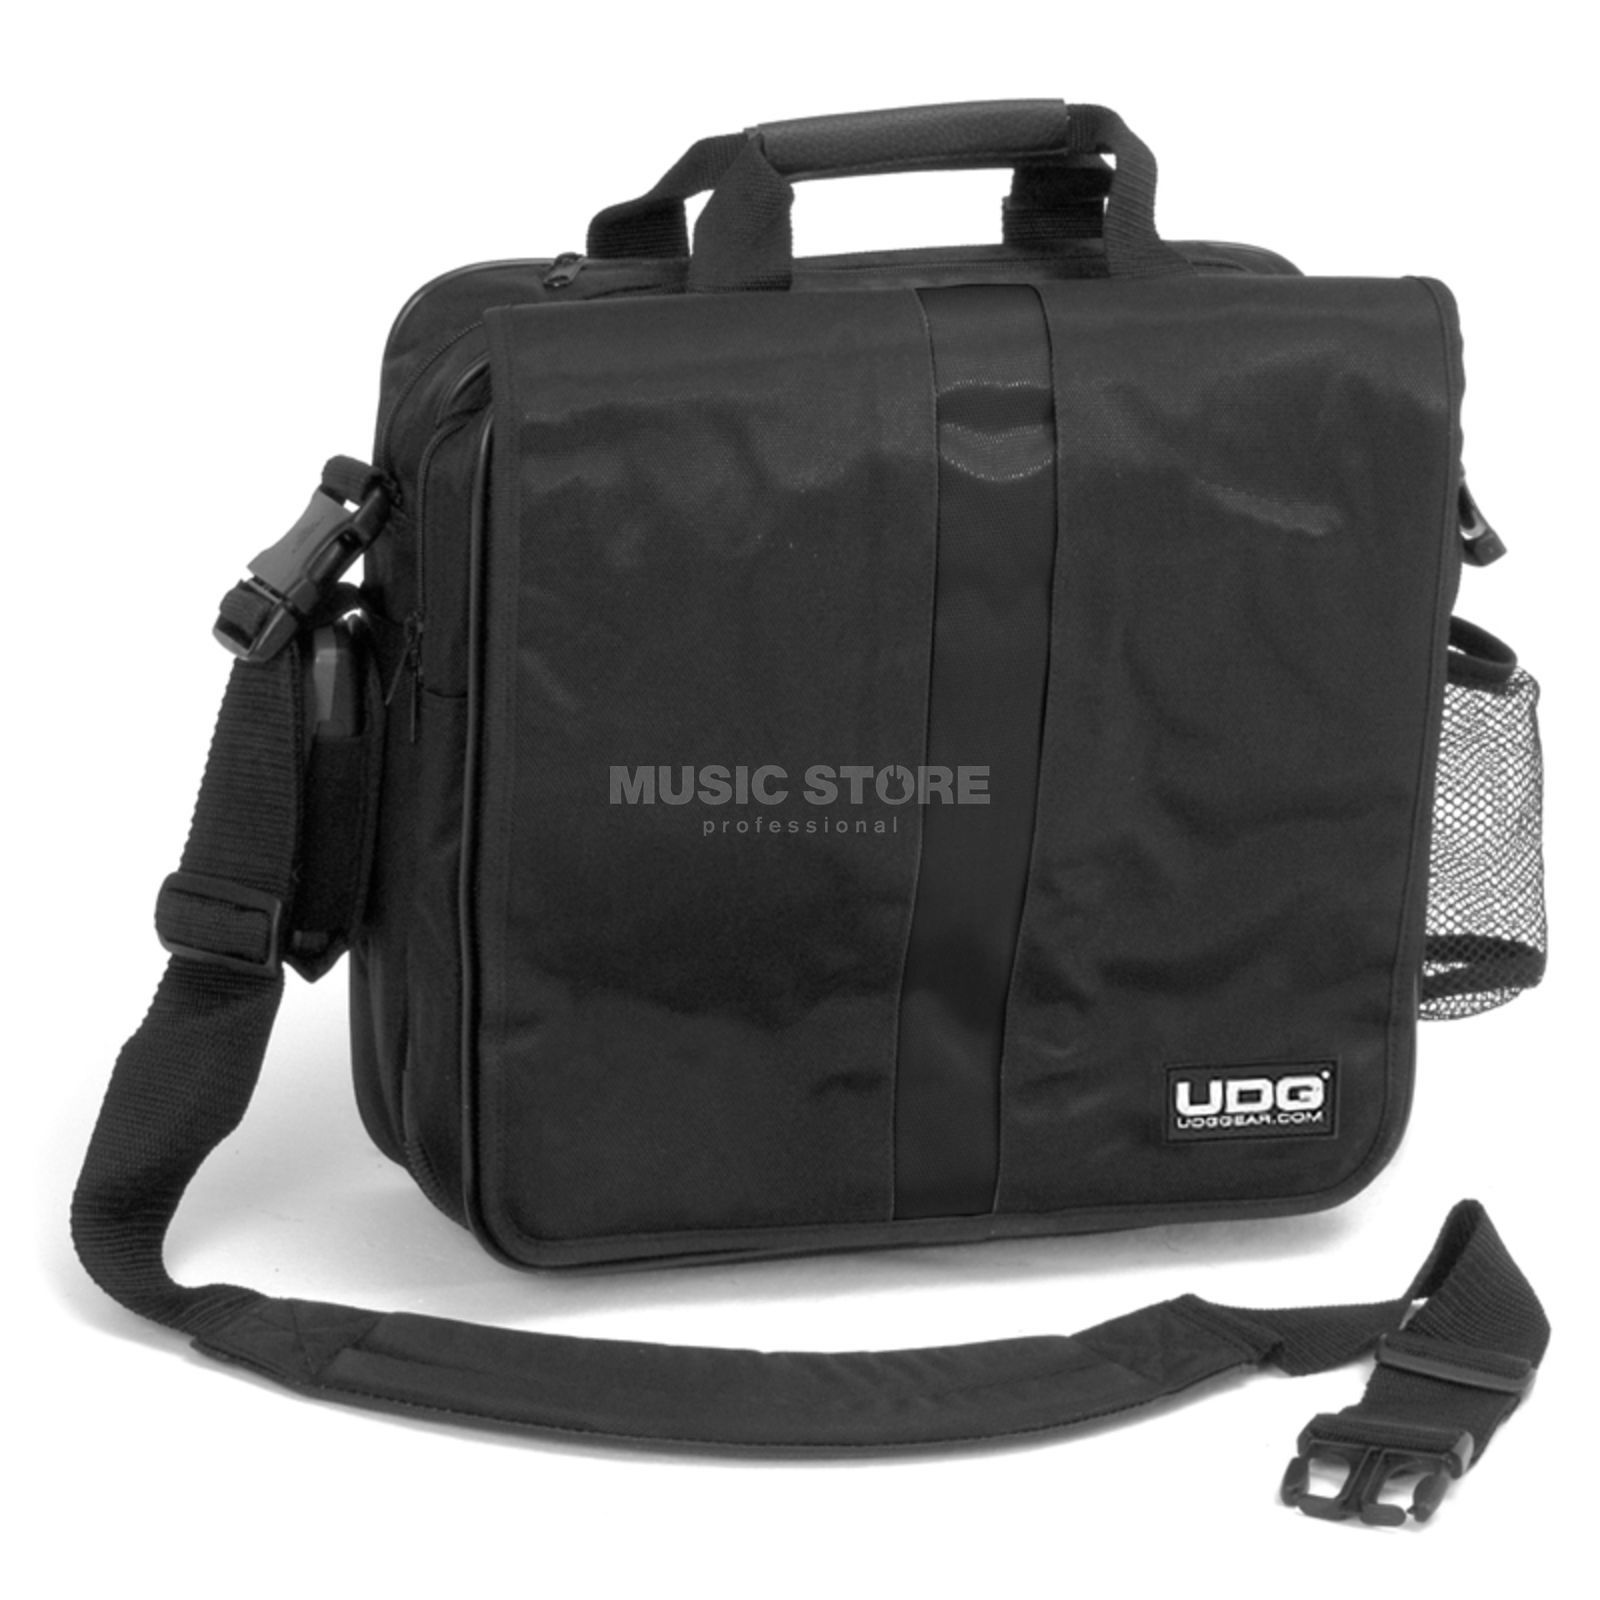 UDG UDG CourierBag Deluxe Black/ Orange (U9470BL/OR) Product Image